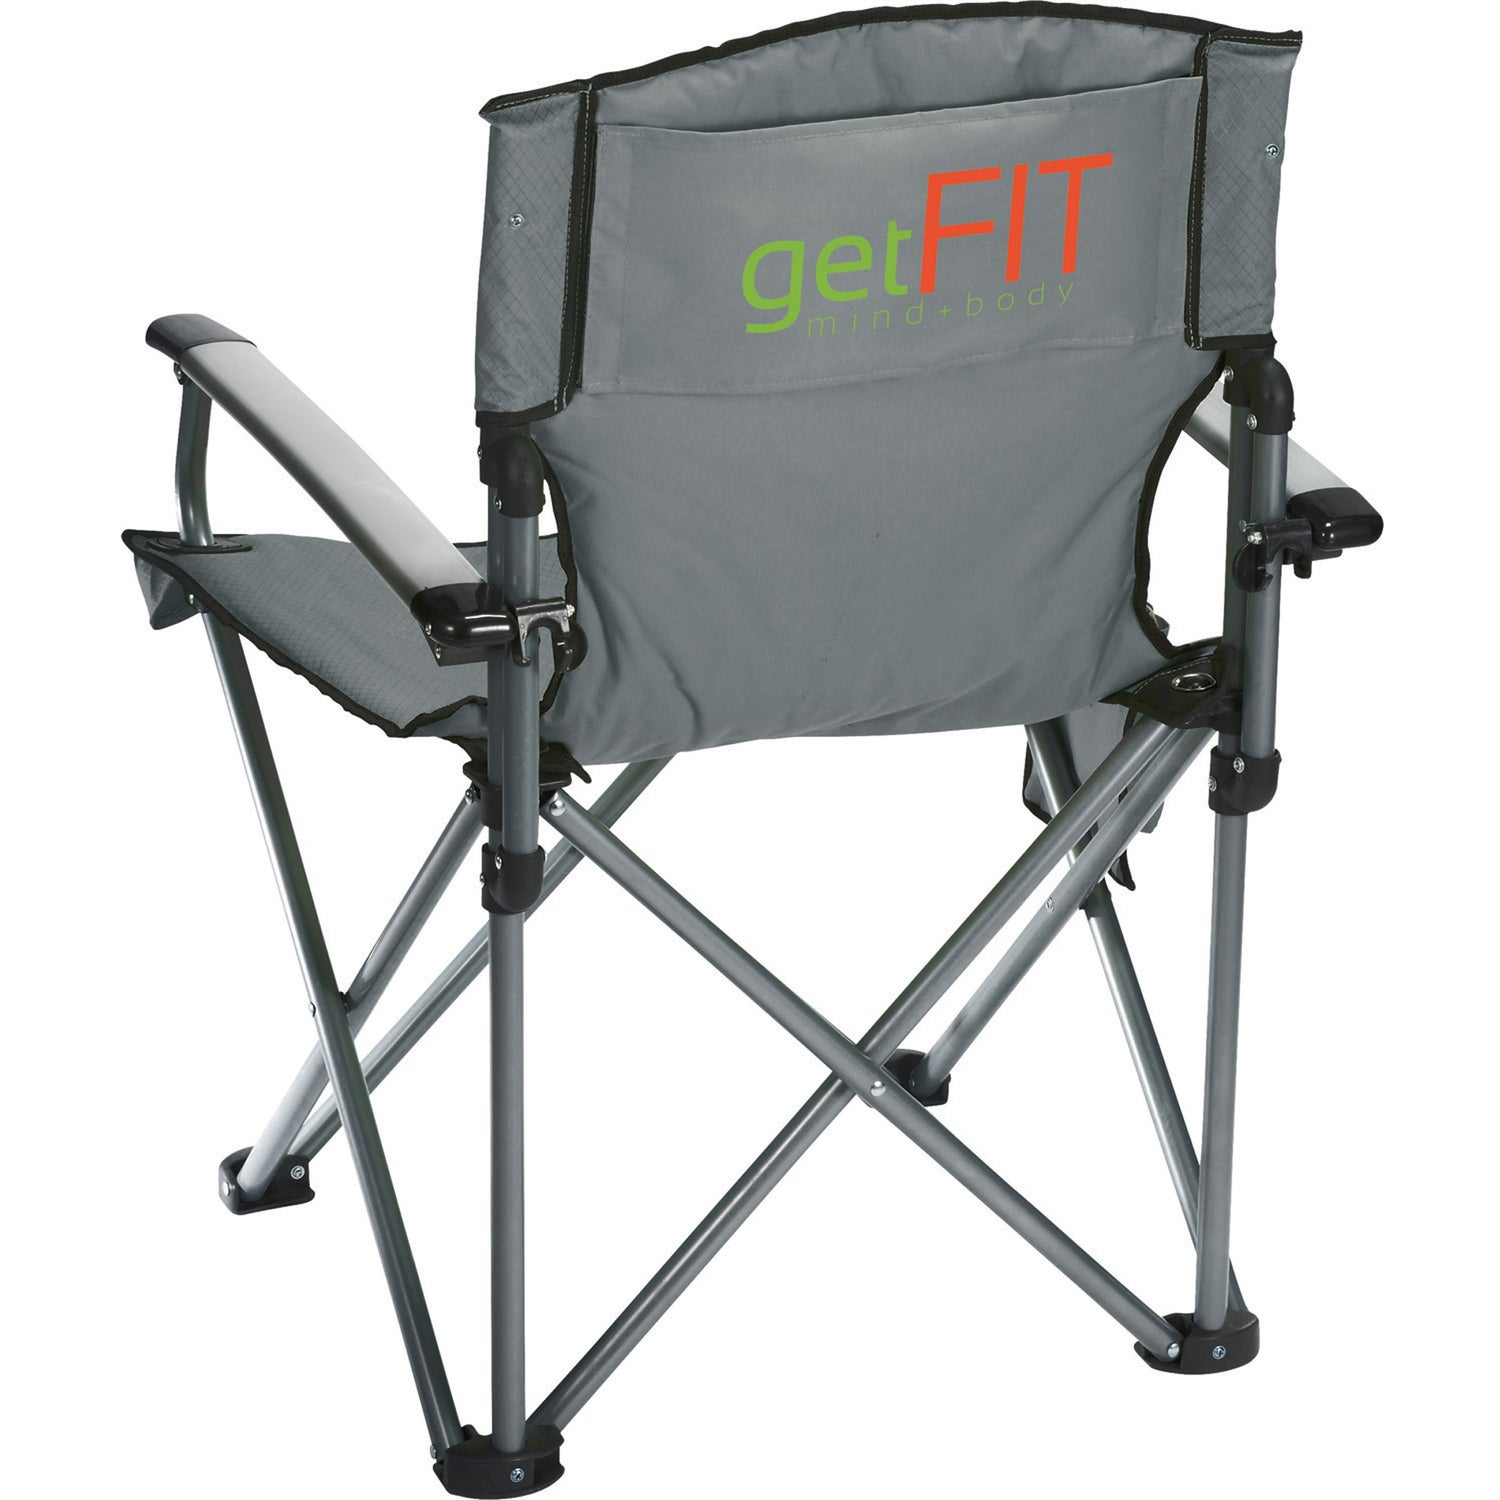 chairs deluxe sm camping chair paradise backcountry lounge com blue smoke kelty